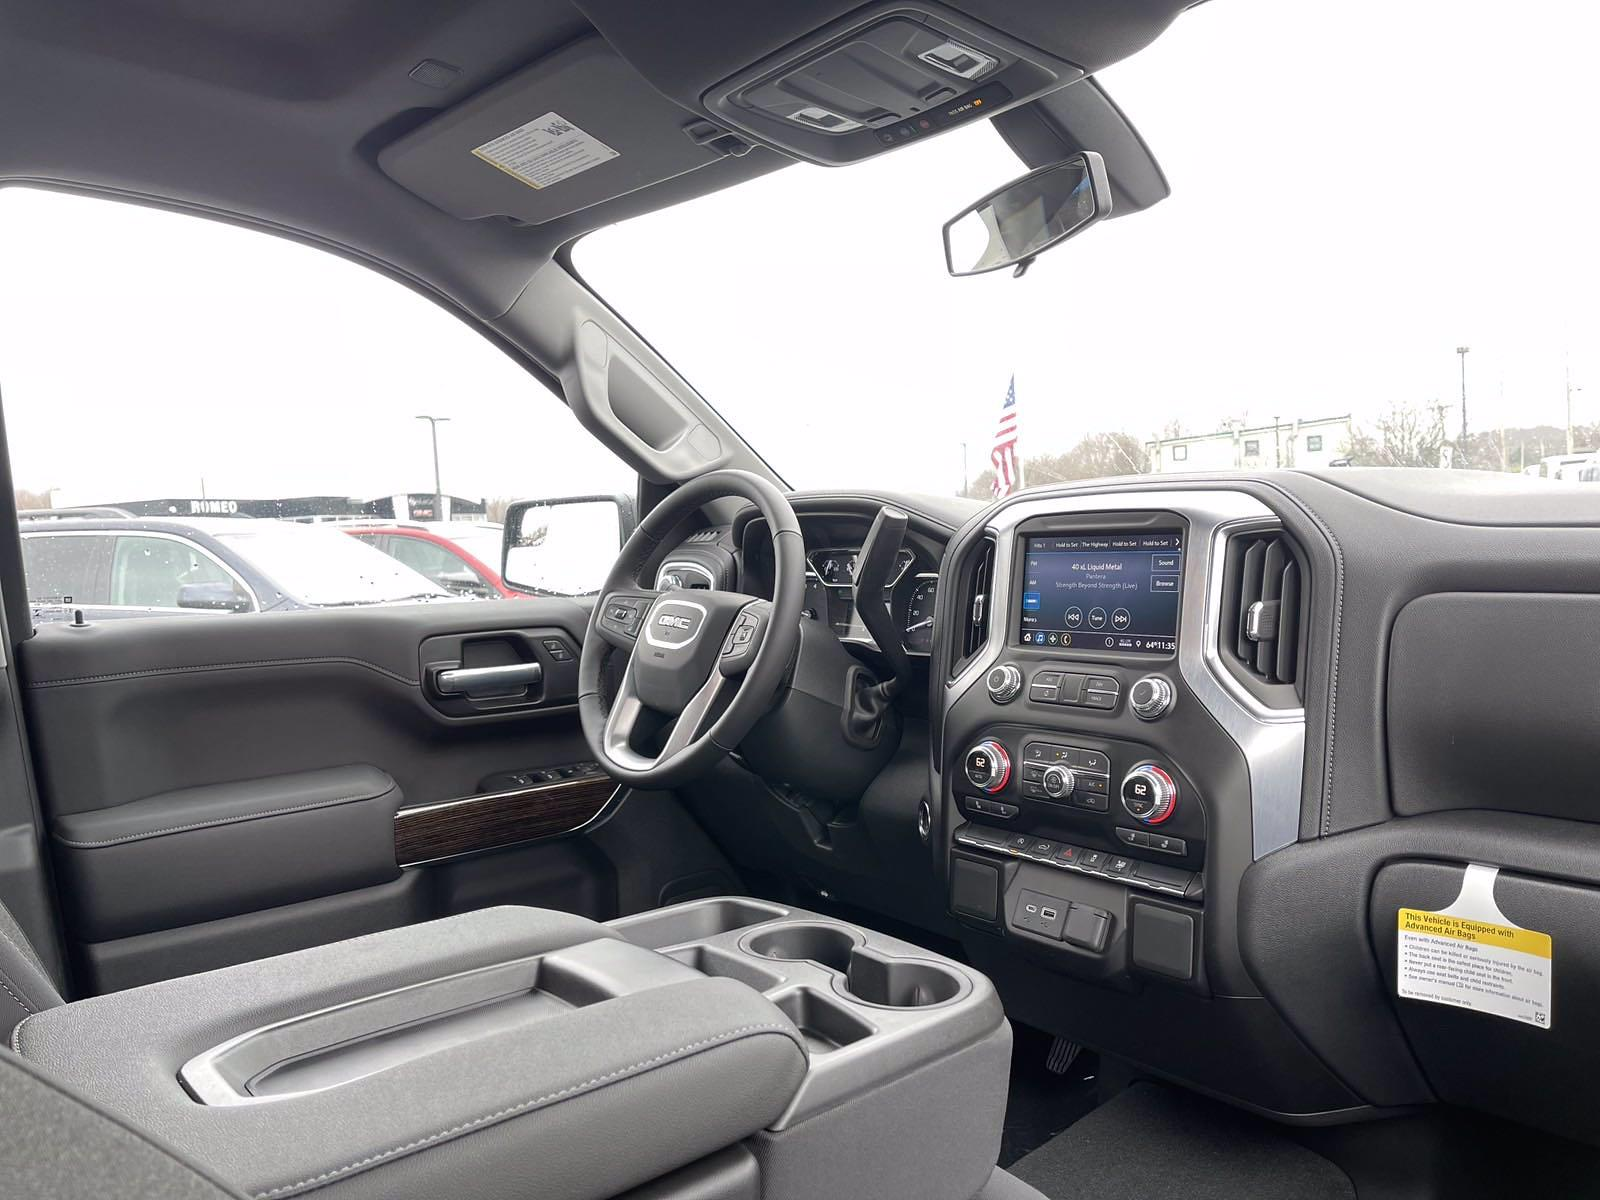 2021 GMC Sierra 1500 Crew Cab 4x4, Pickup #21483 - photo 16